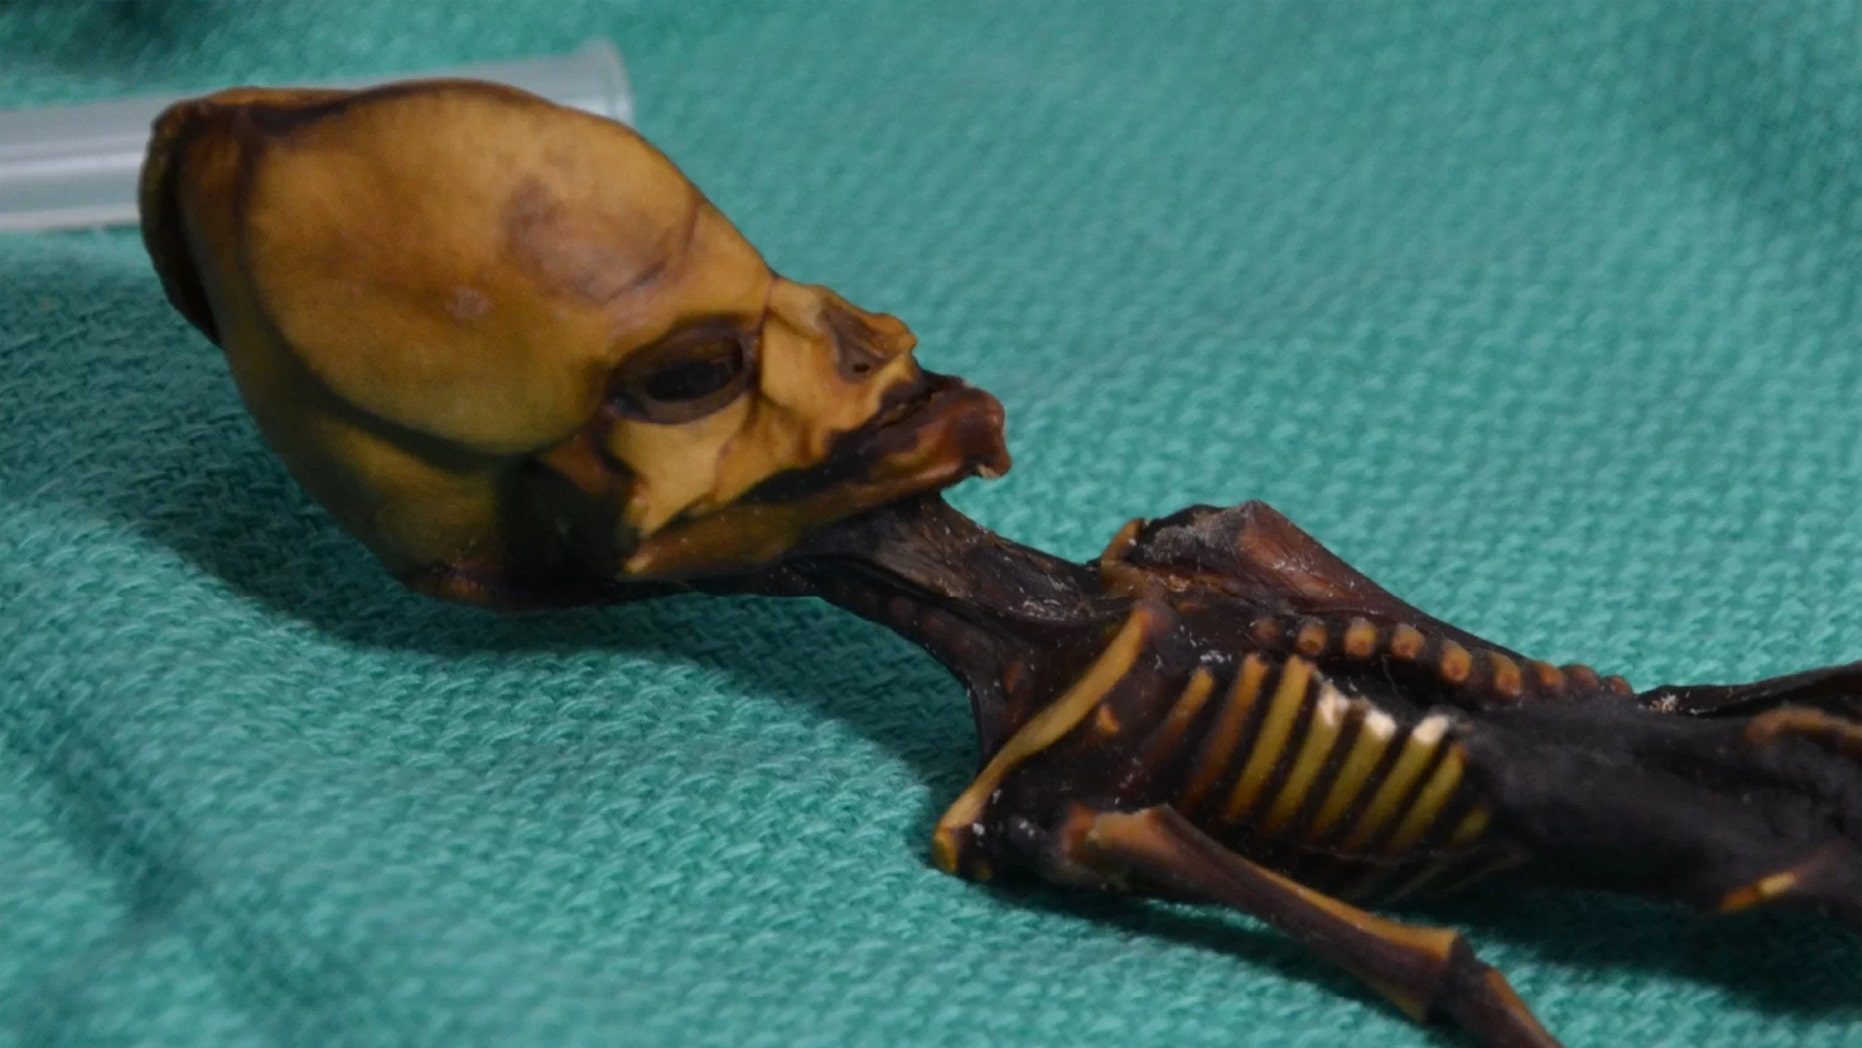 A mummified specimen from Chile's Atacama region fueled speculation for a decade about its peculiar skull. Credit: Bhattacharya S et al. 2018